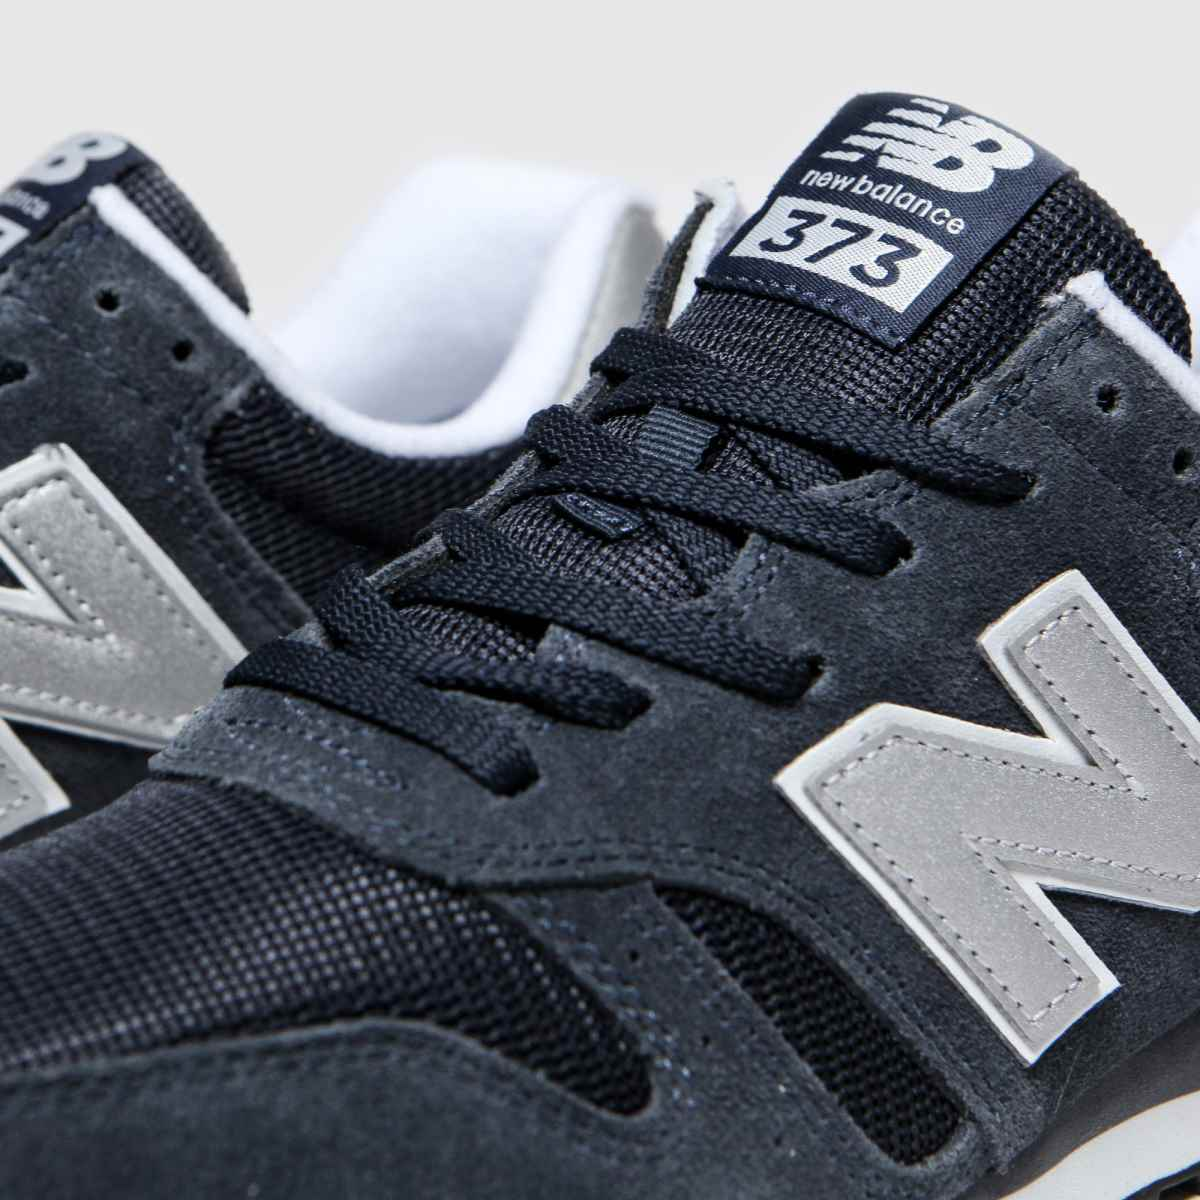 New Balance 373 v2 Navy & Silver Men's Trainer Sneakers / Limited Size